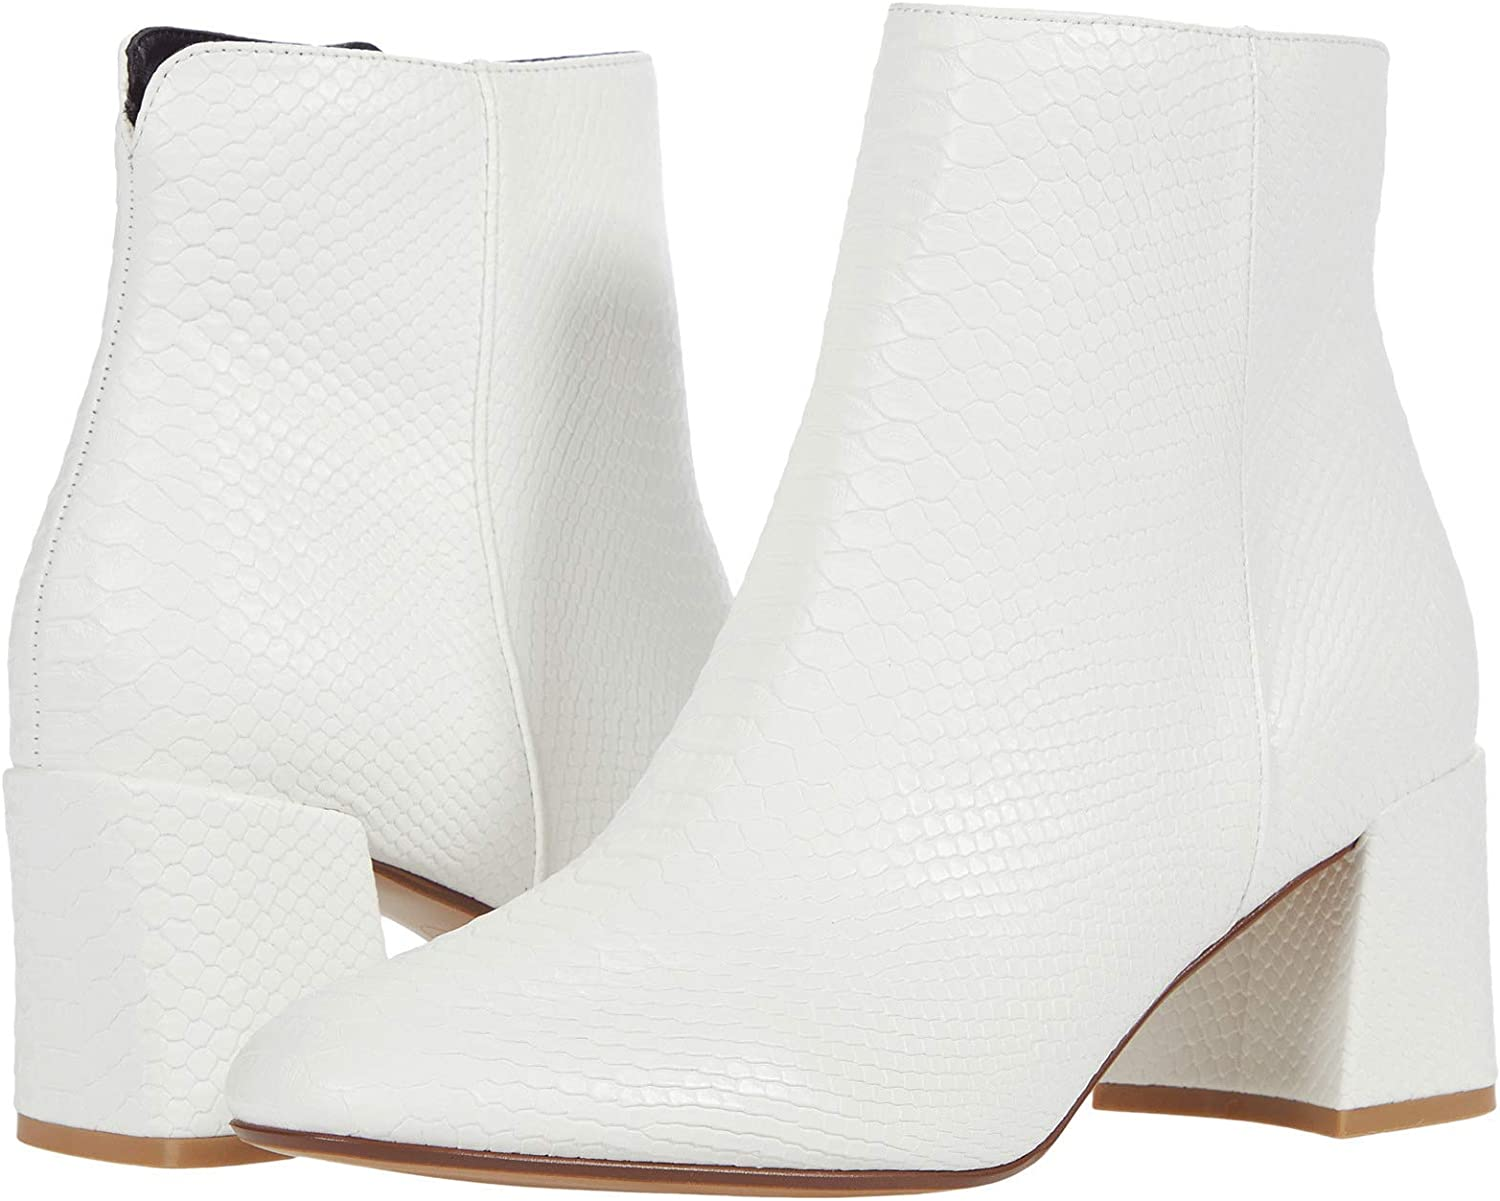   Chinese Laundry Daria   Ankle & Bootie